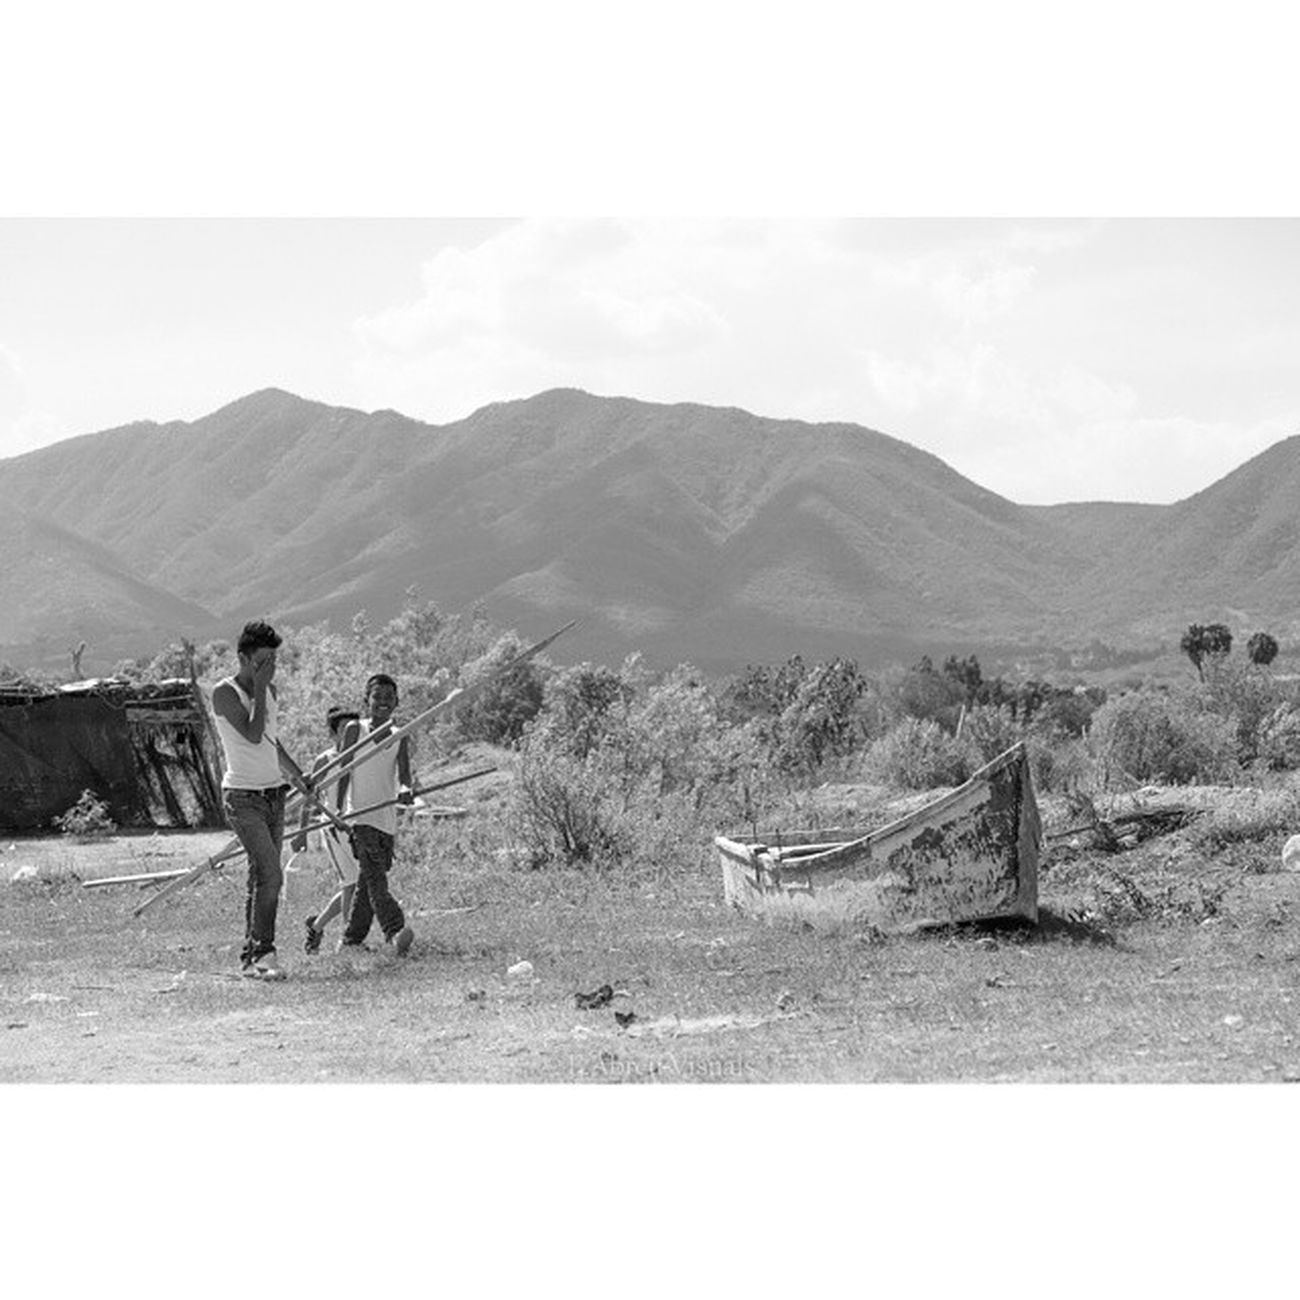 Hunter Gatherers Mexico Eabreumexico Jalisco Residency chapala photography artist mexico2014